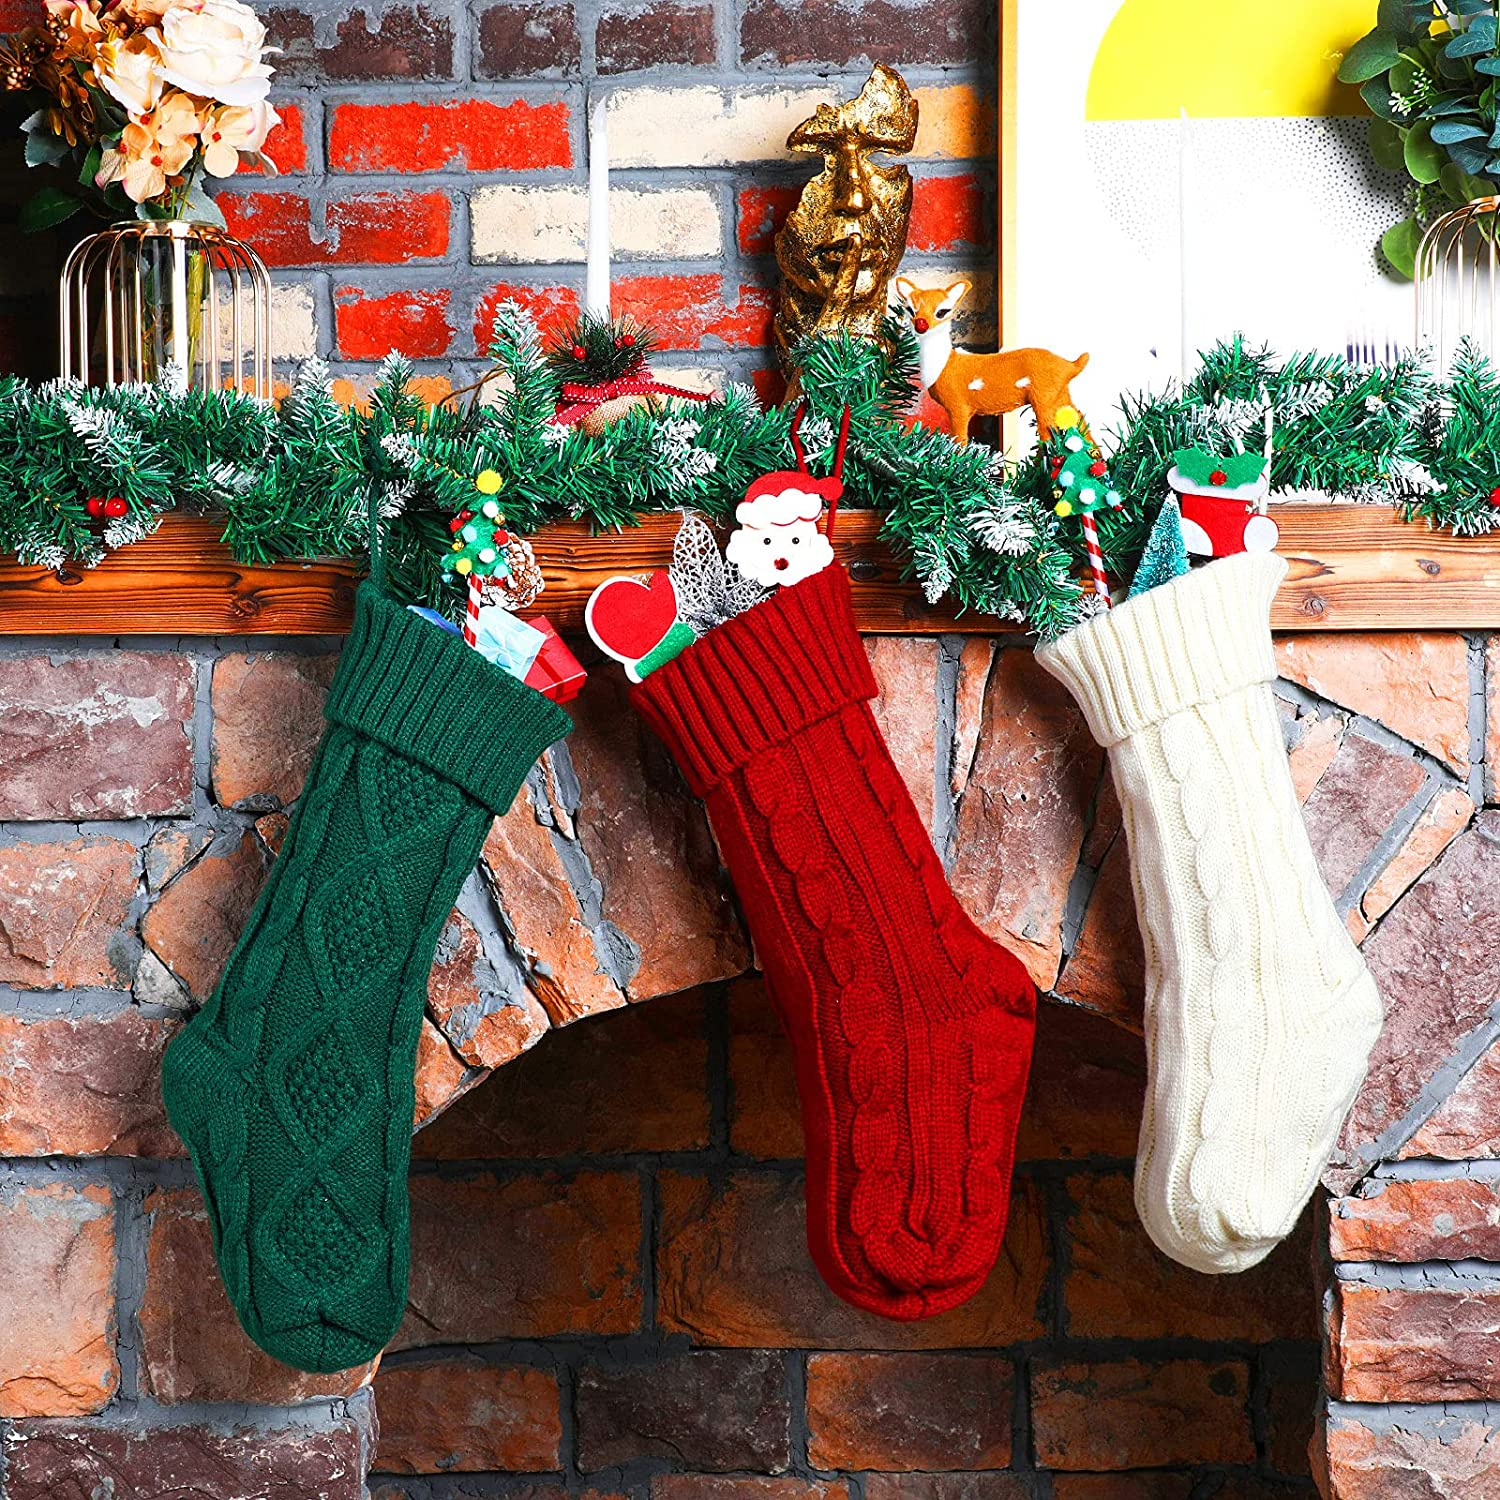 9 Pieces 18 Inch Online limited product Christmas Knitted Classic Regular discount Stockings R